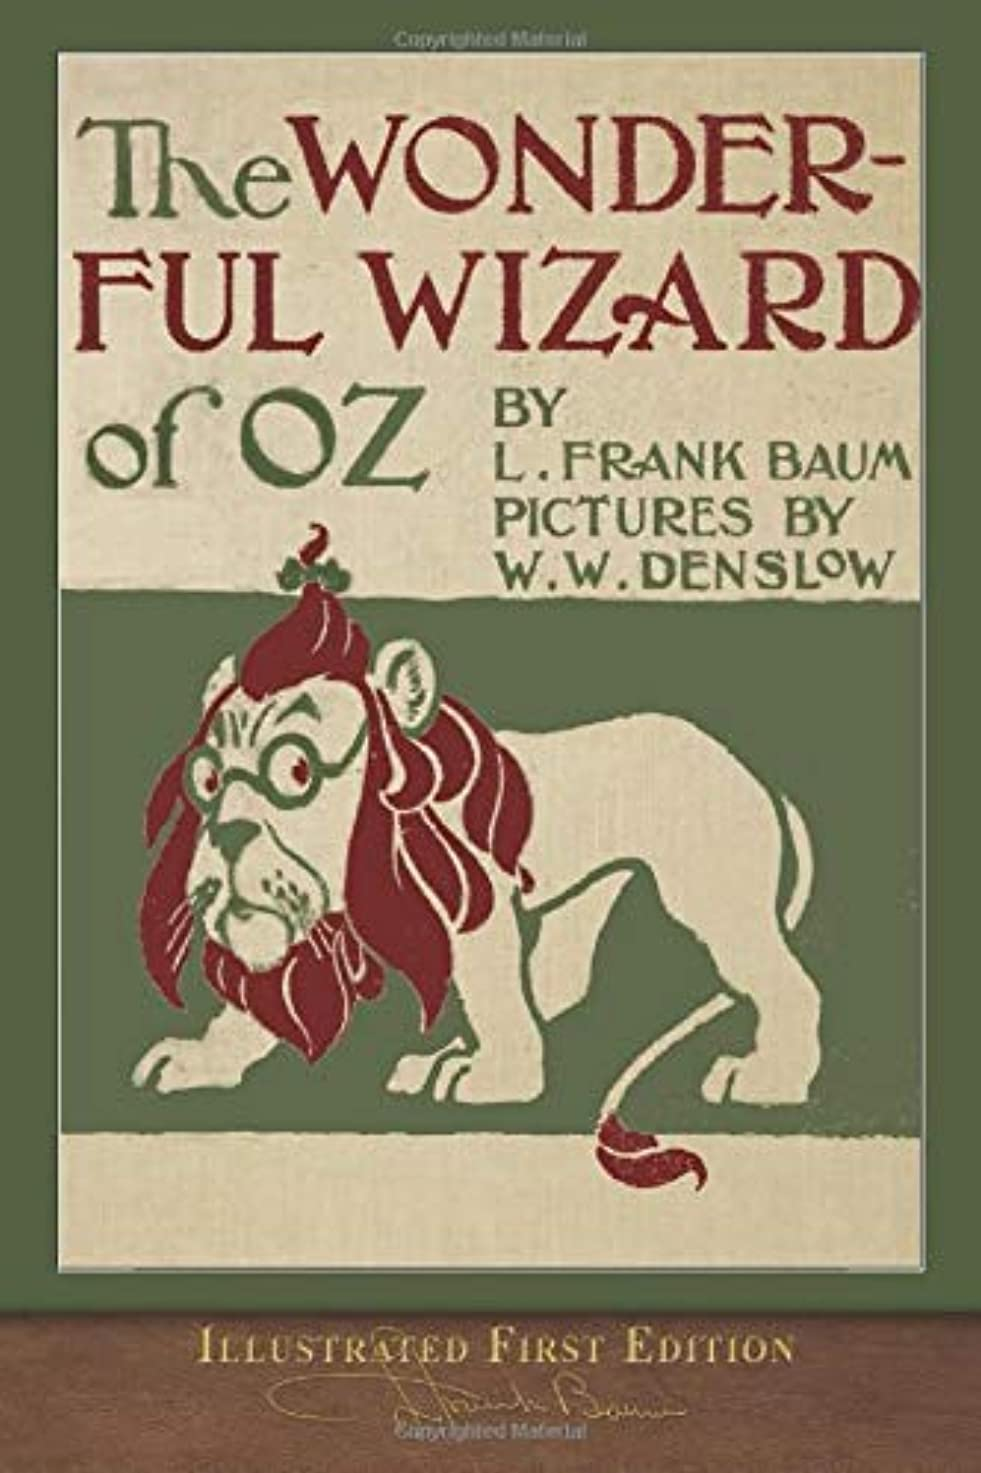 スペイン語警察署仮定、想定。推測The Wonderful Wizard of Oz (Illustrated First Edition): 100th Anniversary OZ Collection